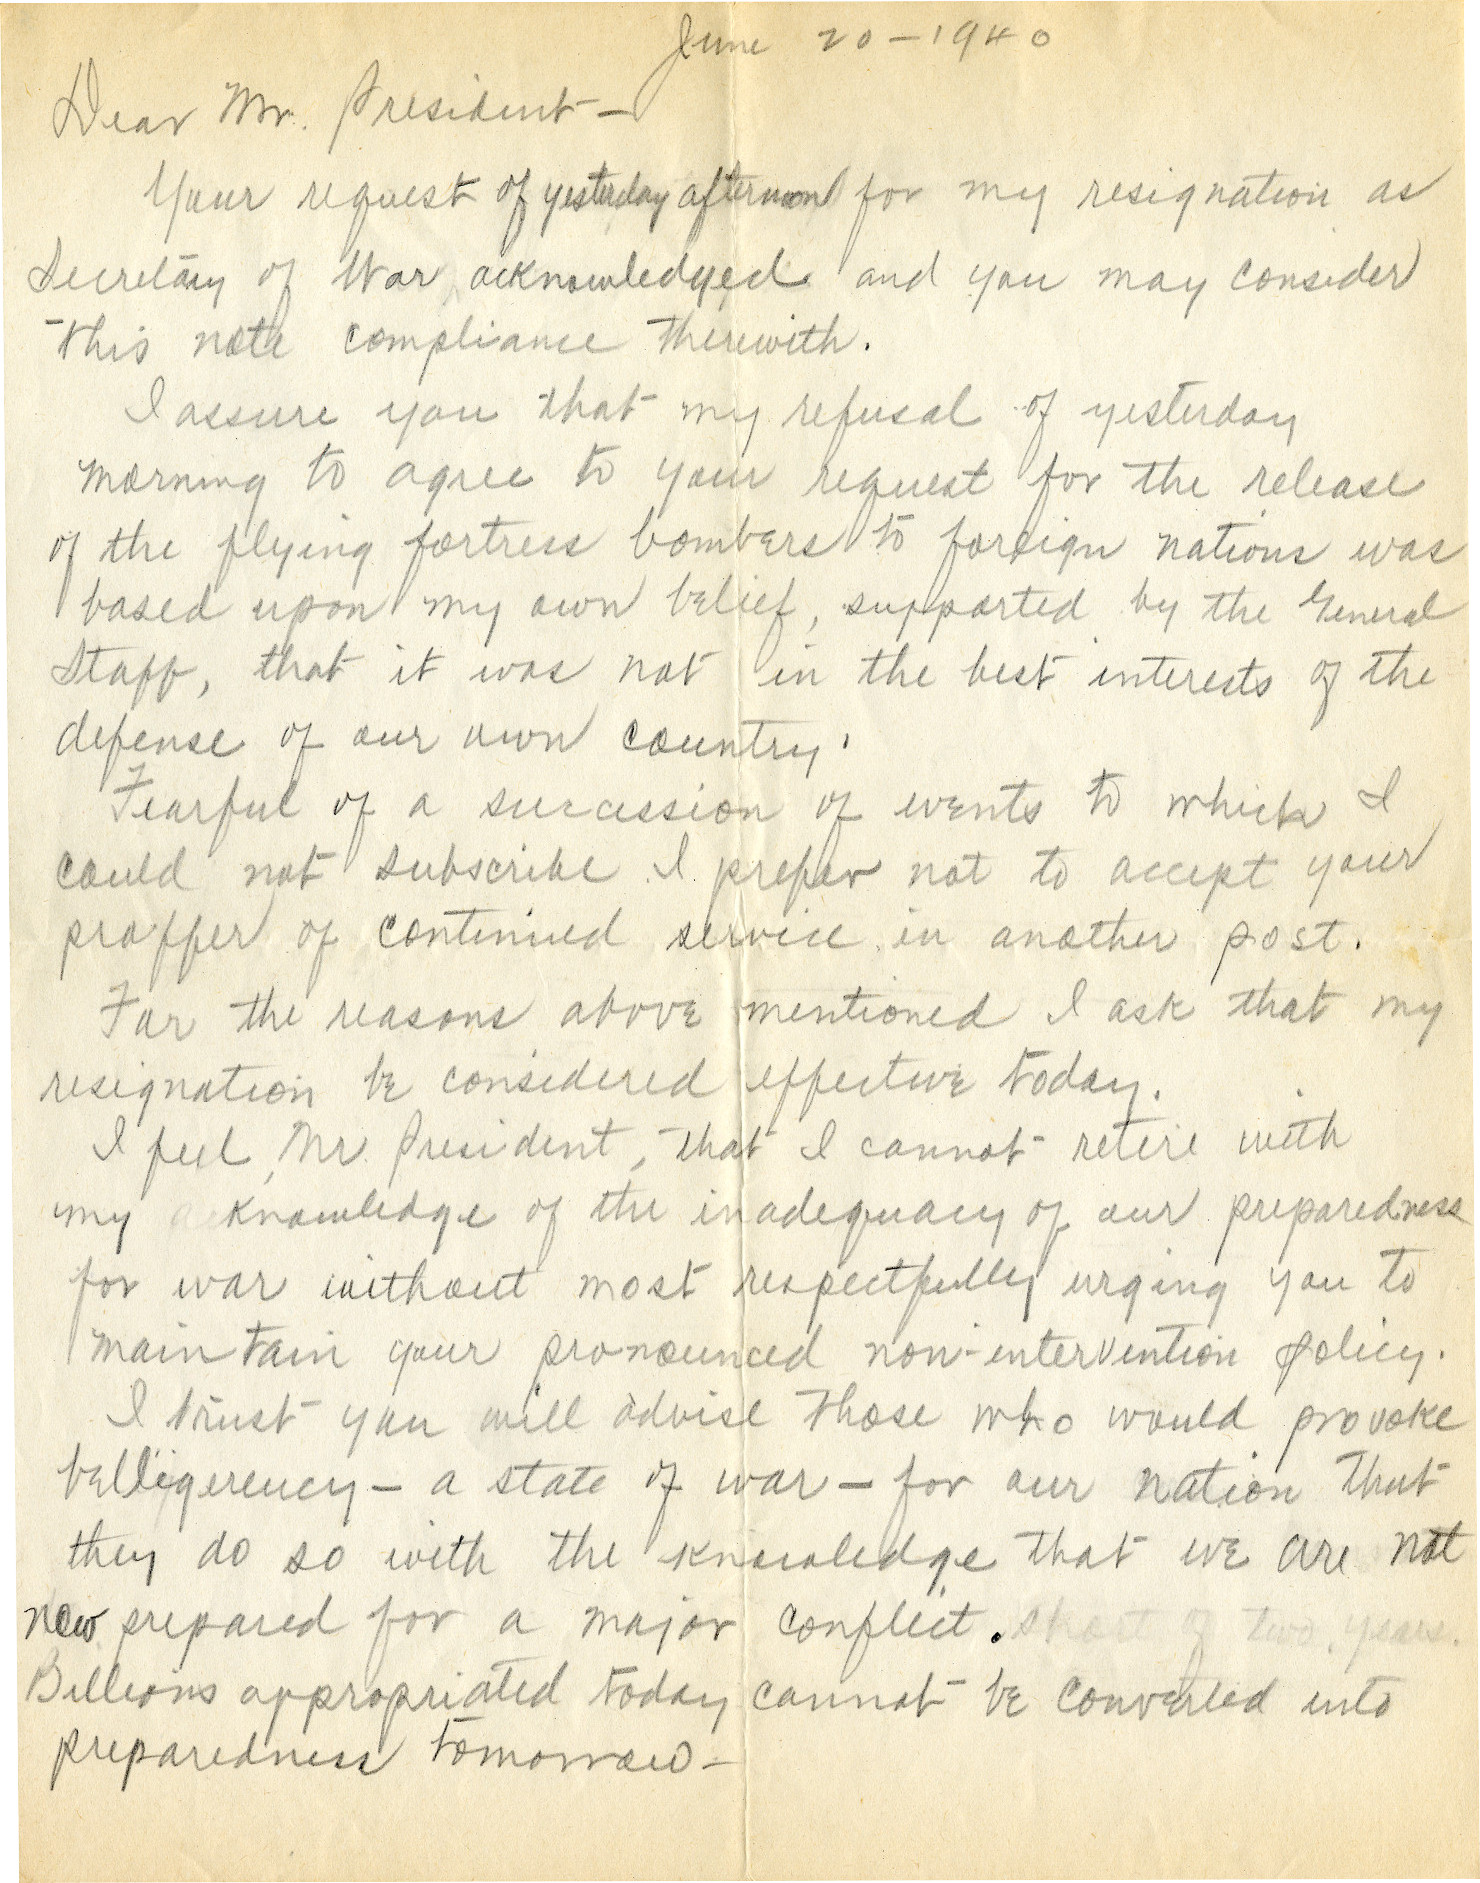 Secretary of War Woodring's Handwritten Draft of His Controversial Resignation Letter to FDR